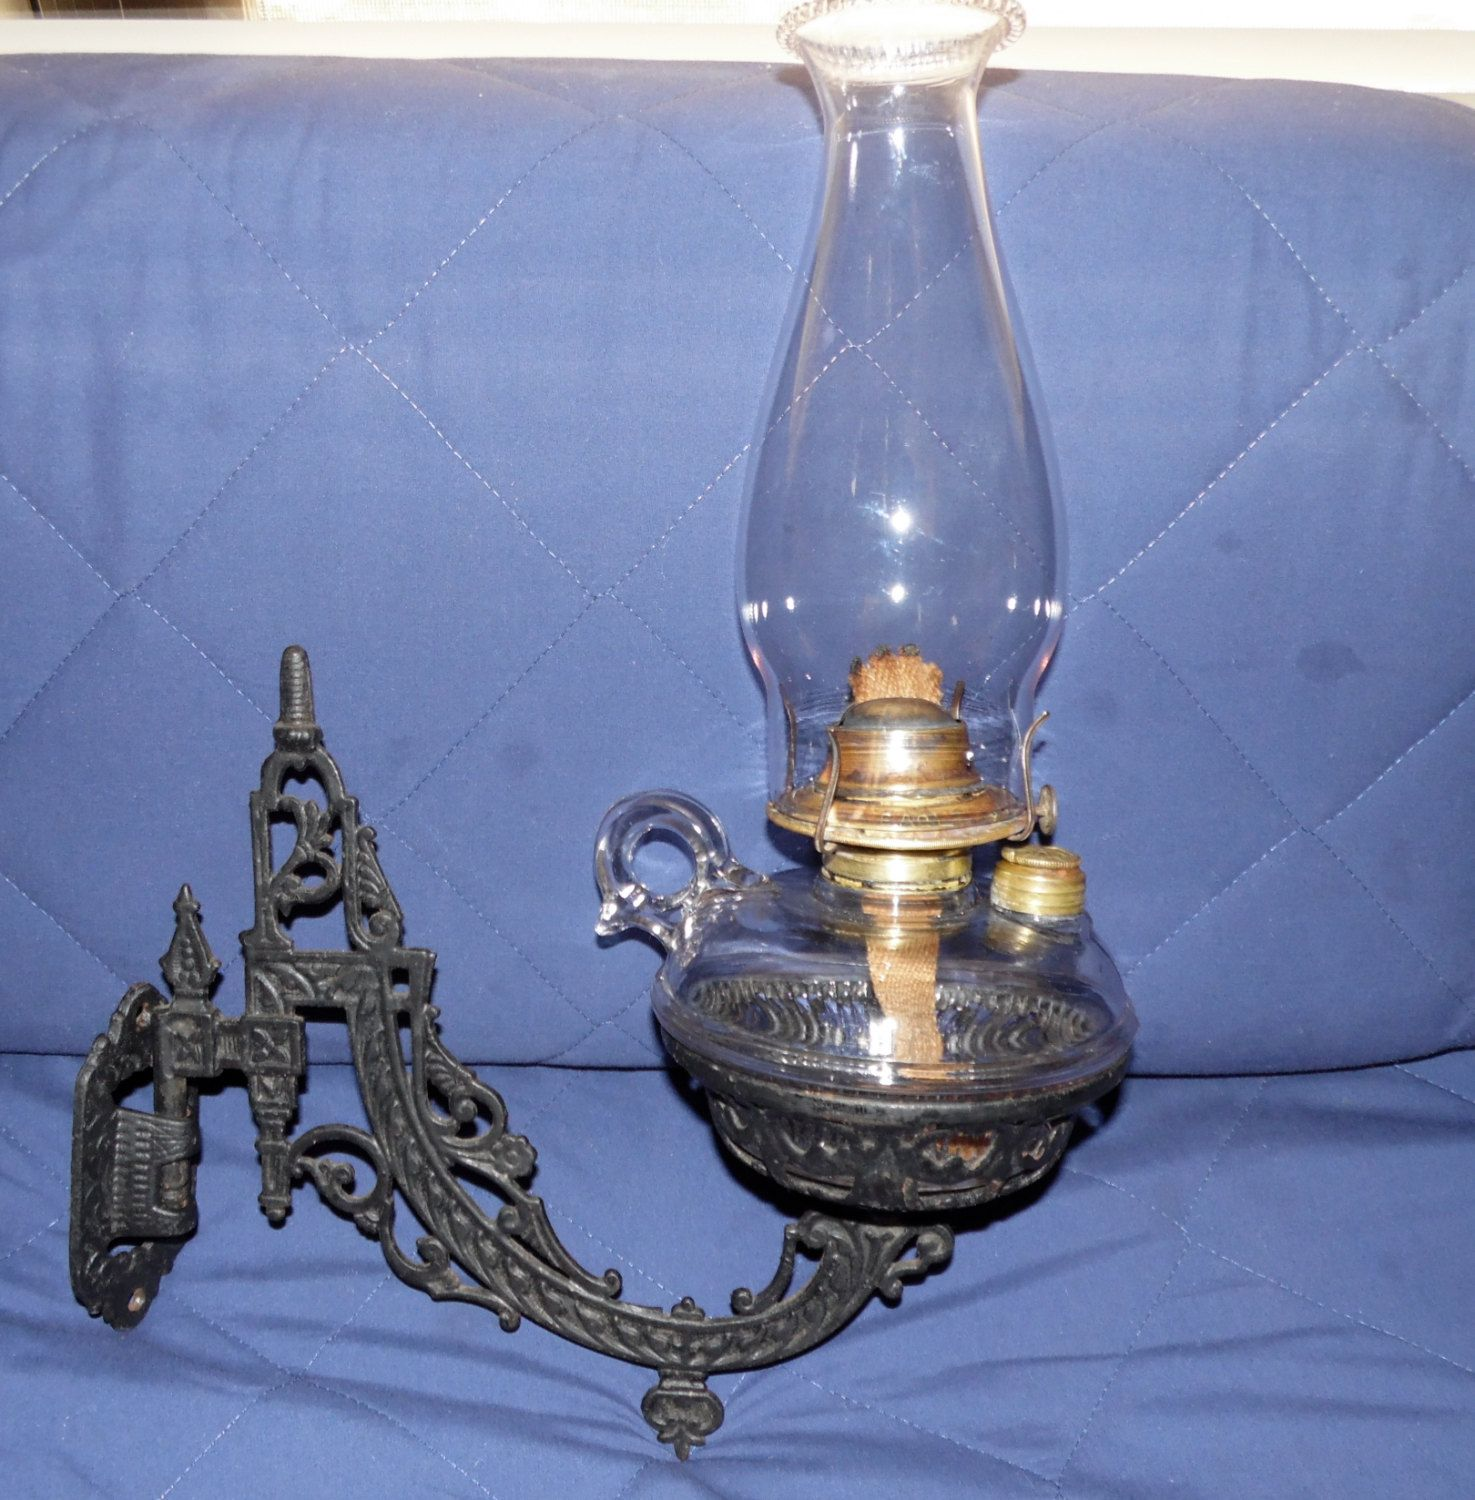 B&H Wall Sconce Oil Lamp Cast Iron 1881 Patent Antique Bradley ...